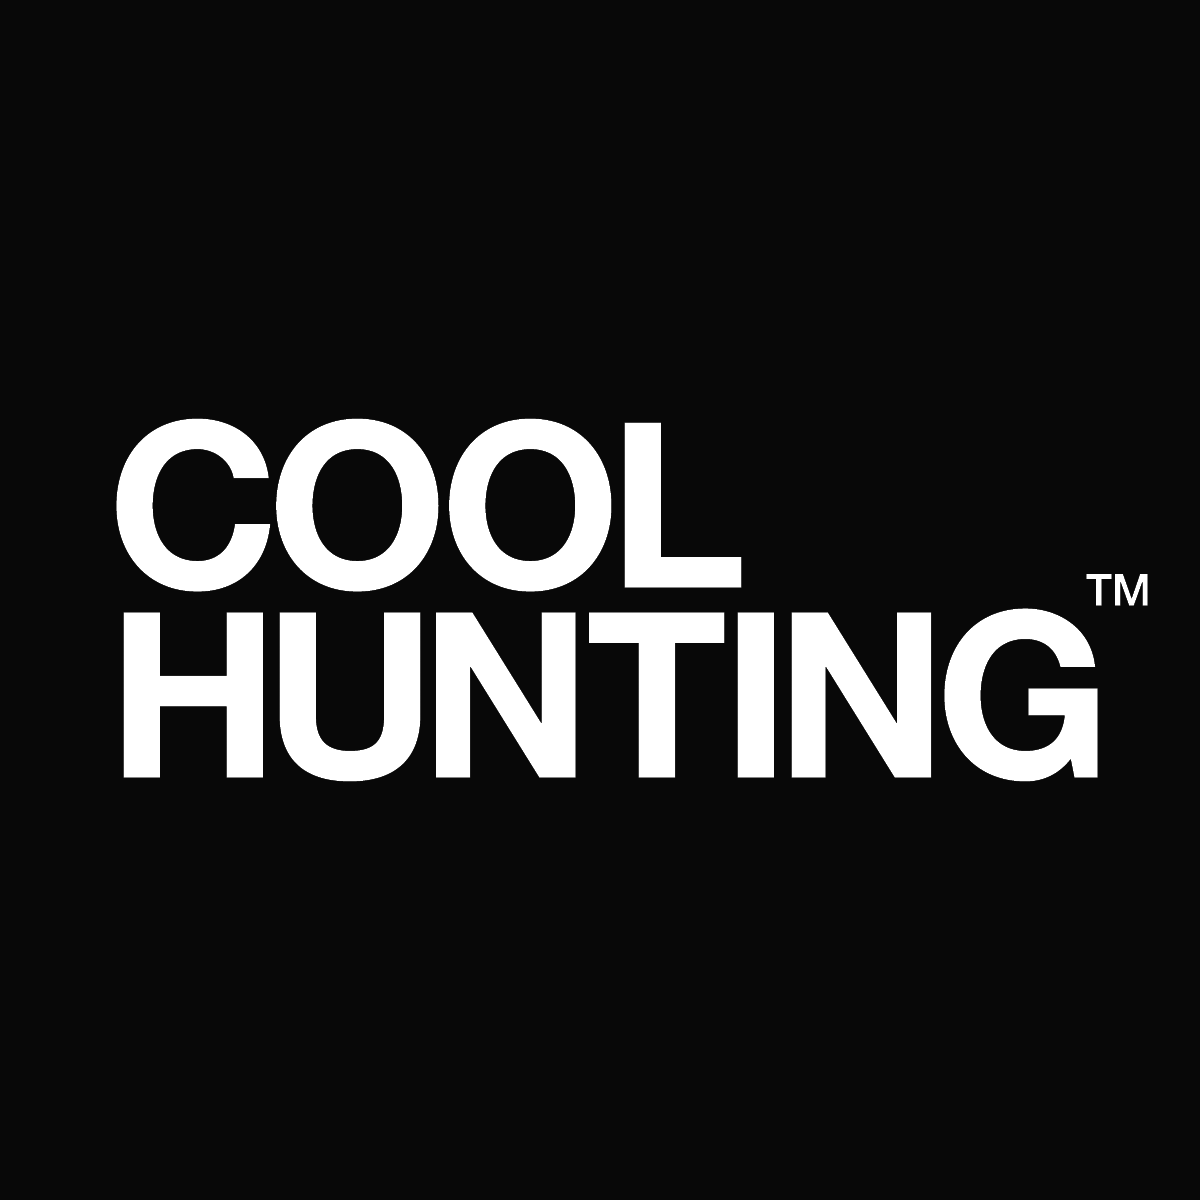 COOL HUNTING STUDIO